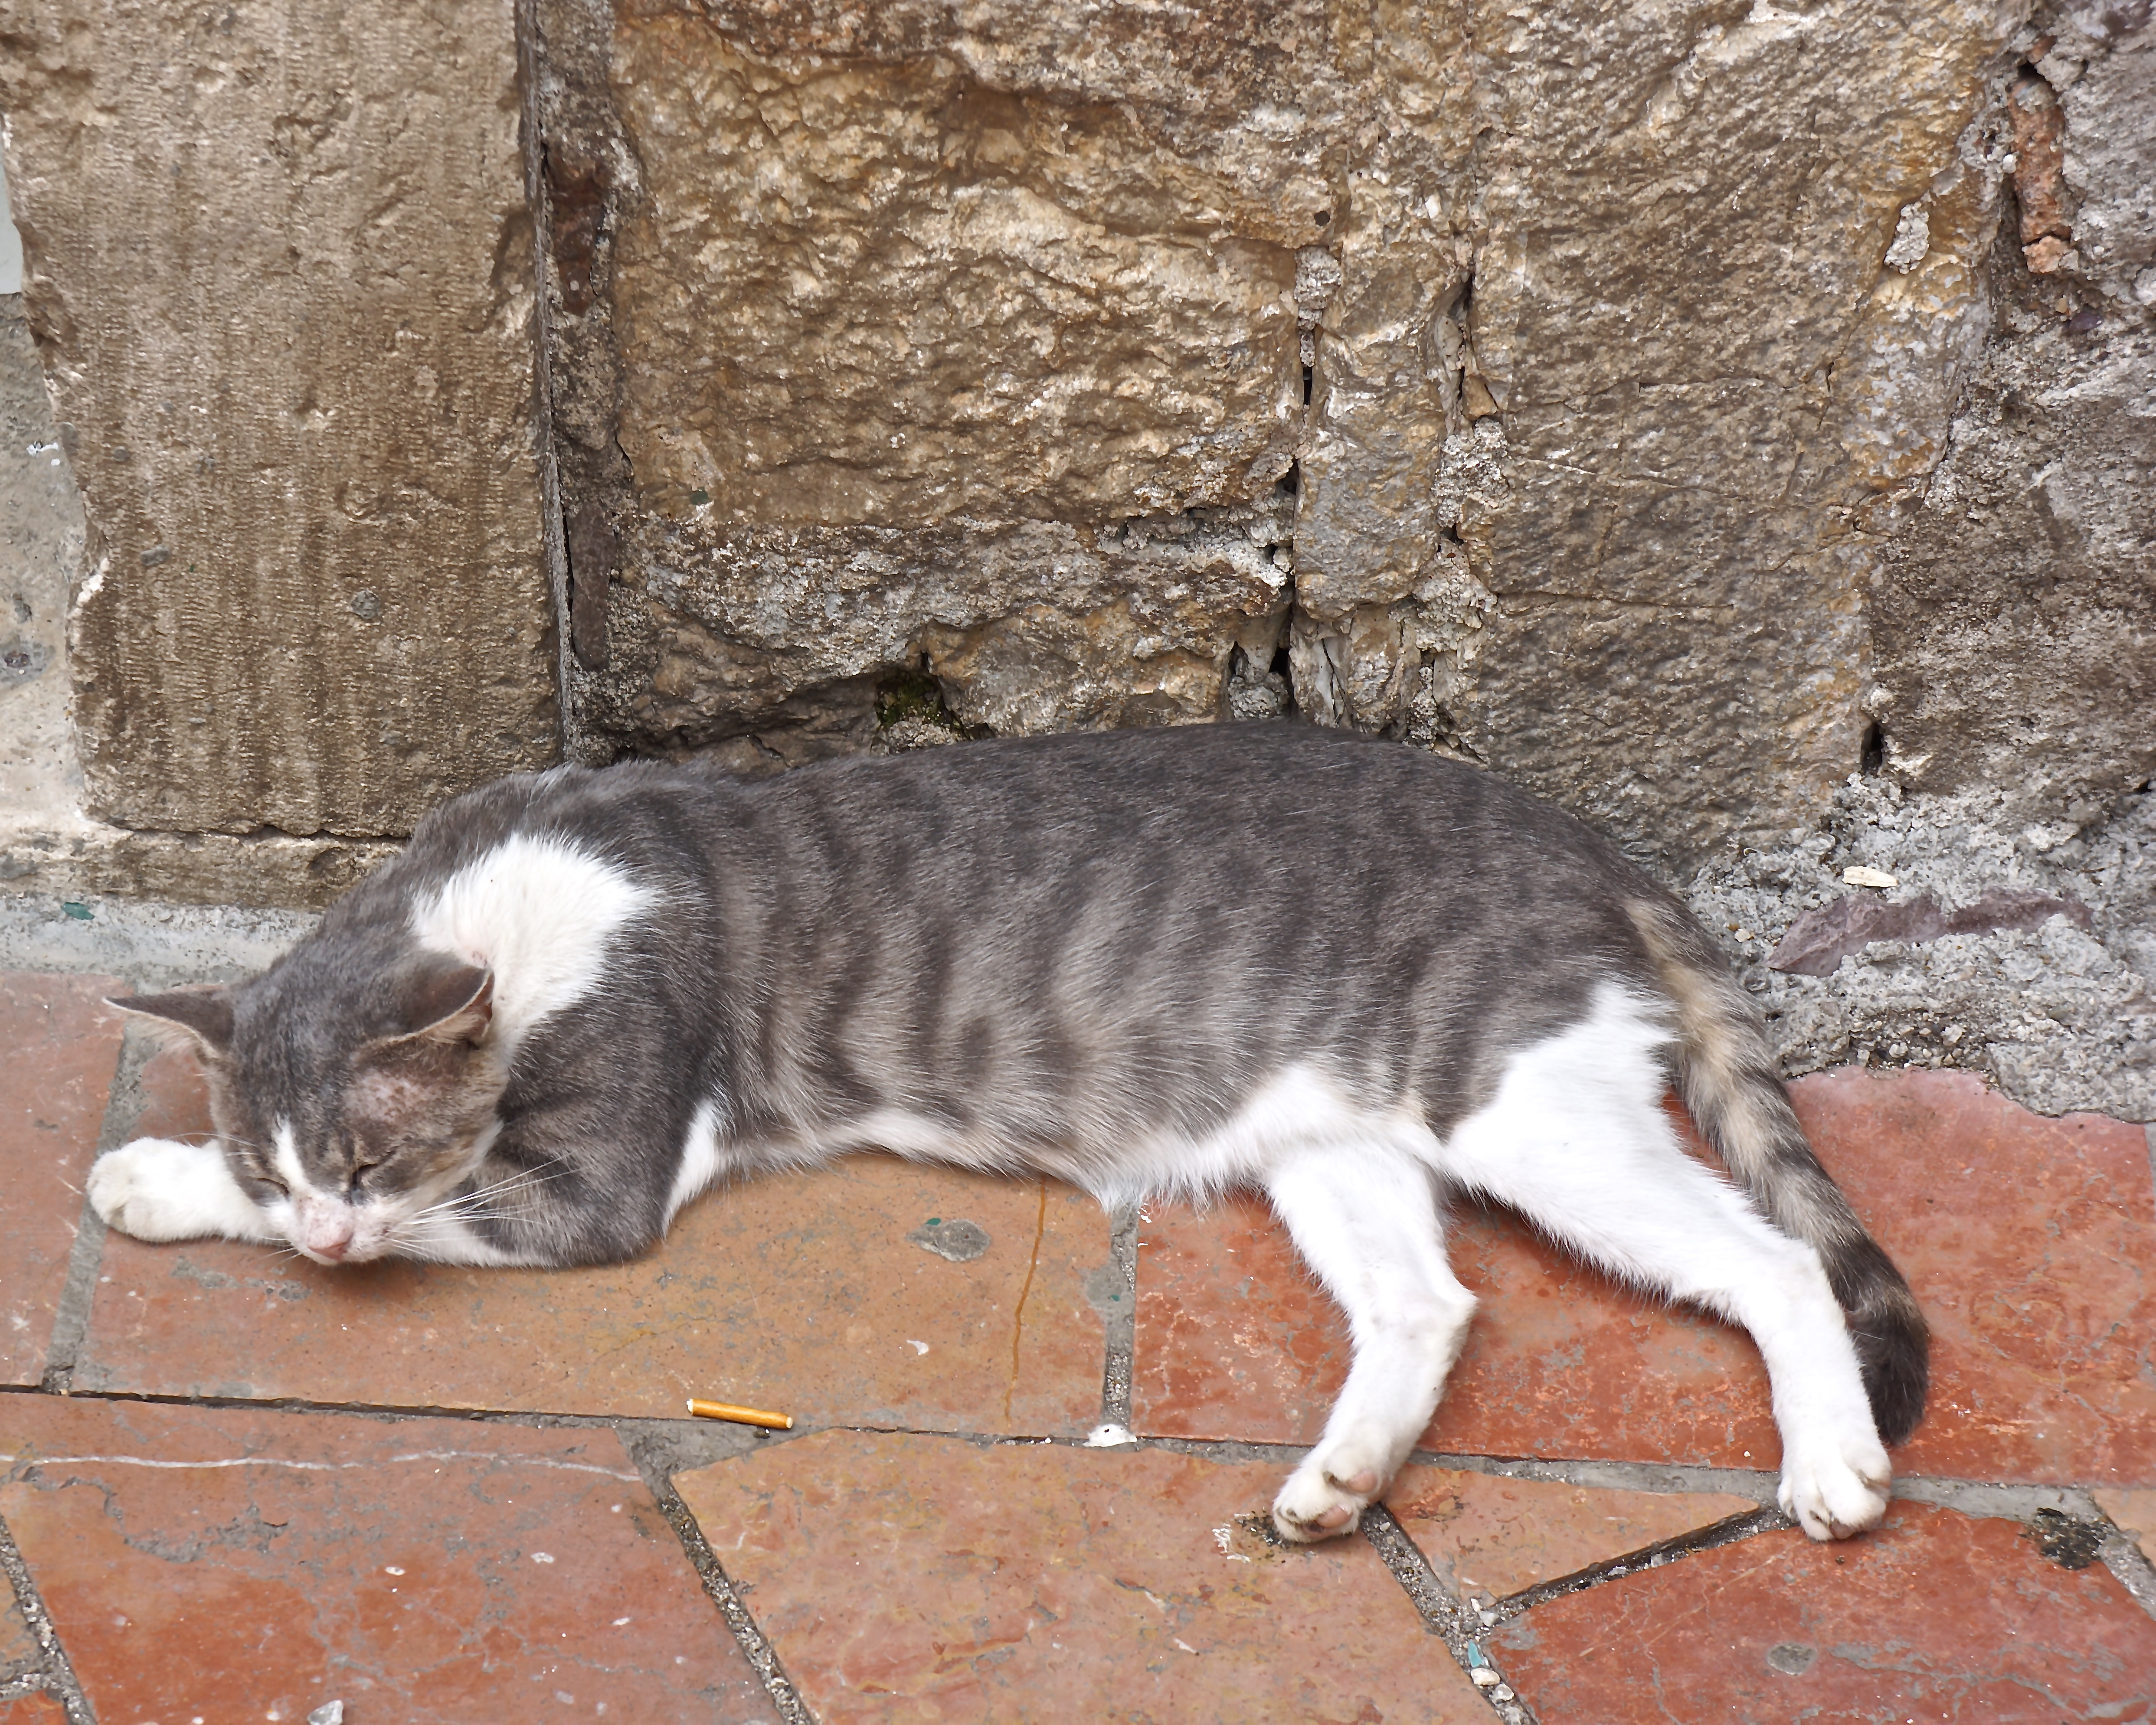 Cats are common residents of every ancient city in Croatia, and they appear to be quite unimpressed by the visiting crowds of tourists.